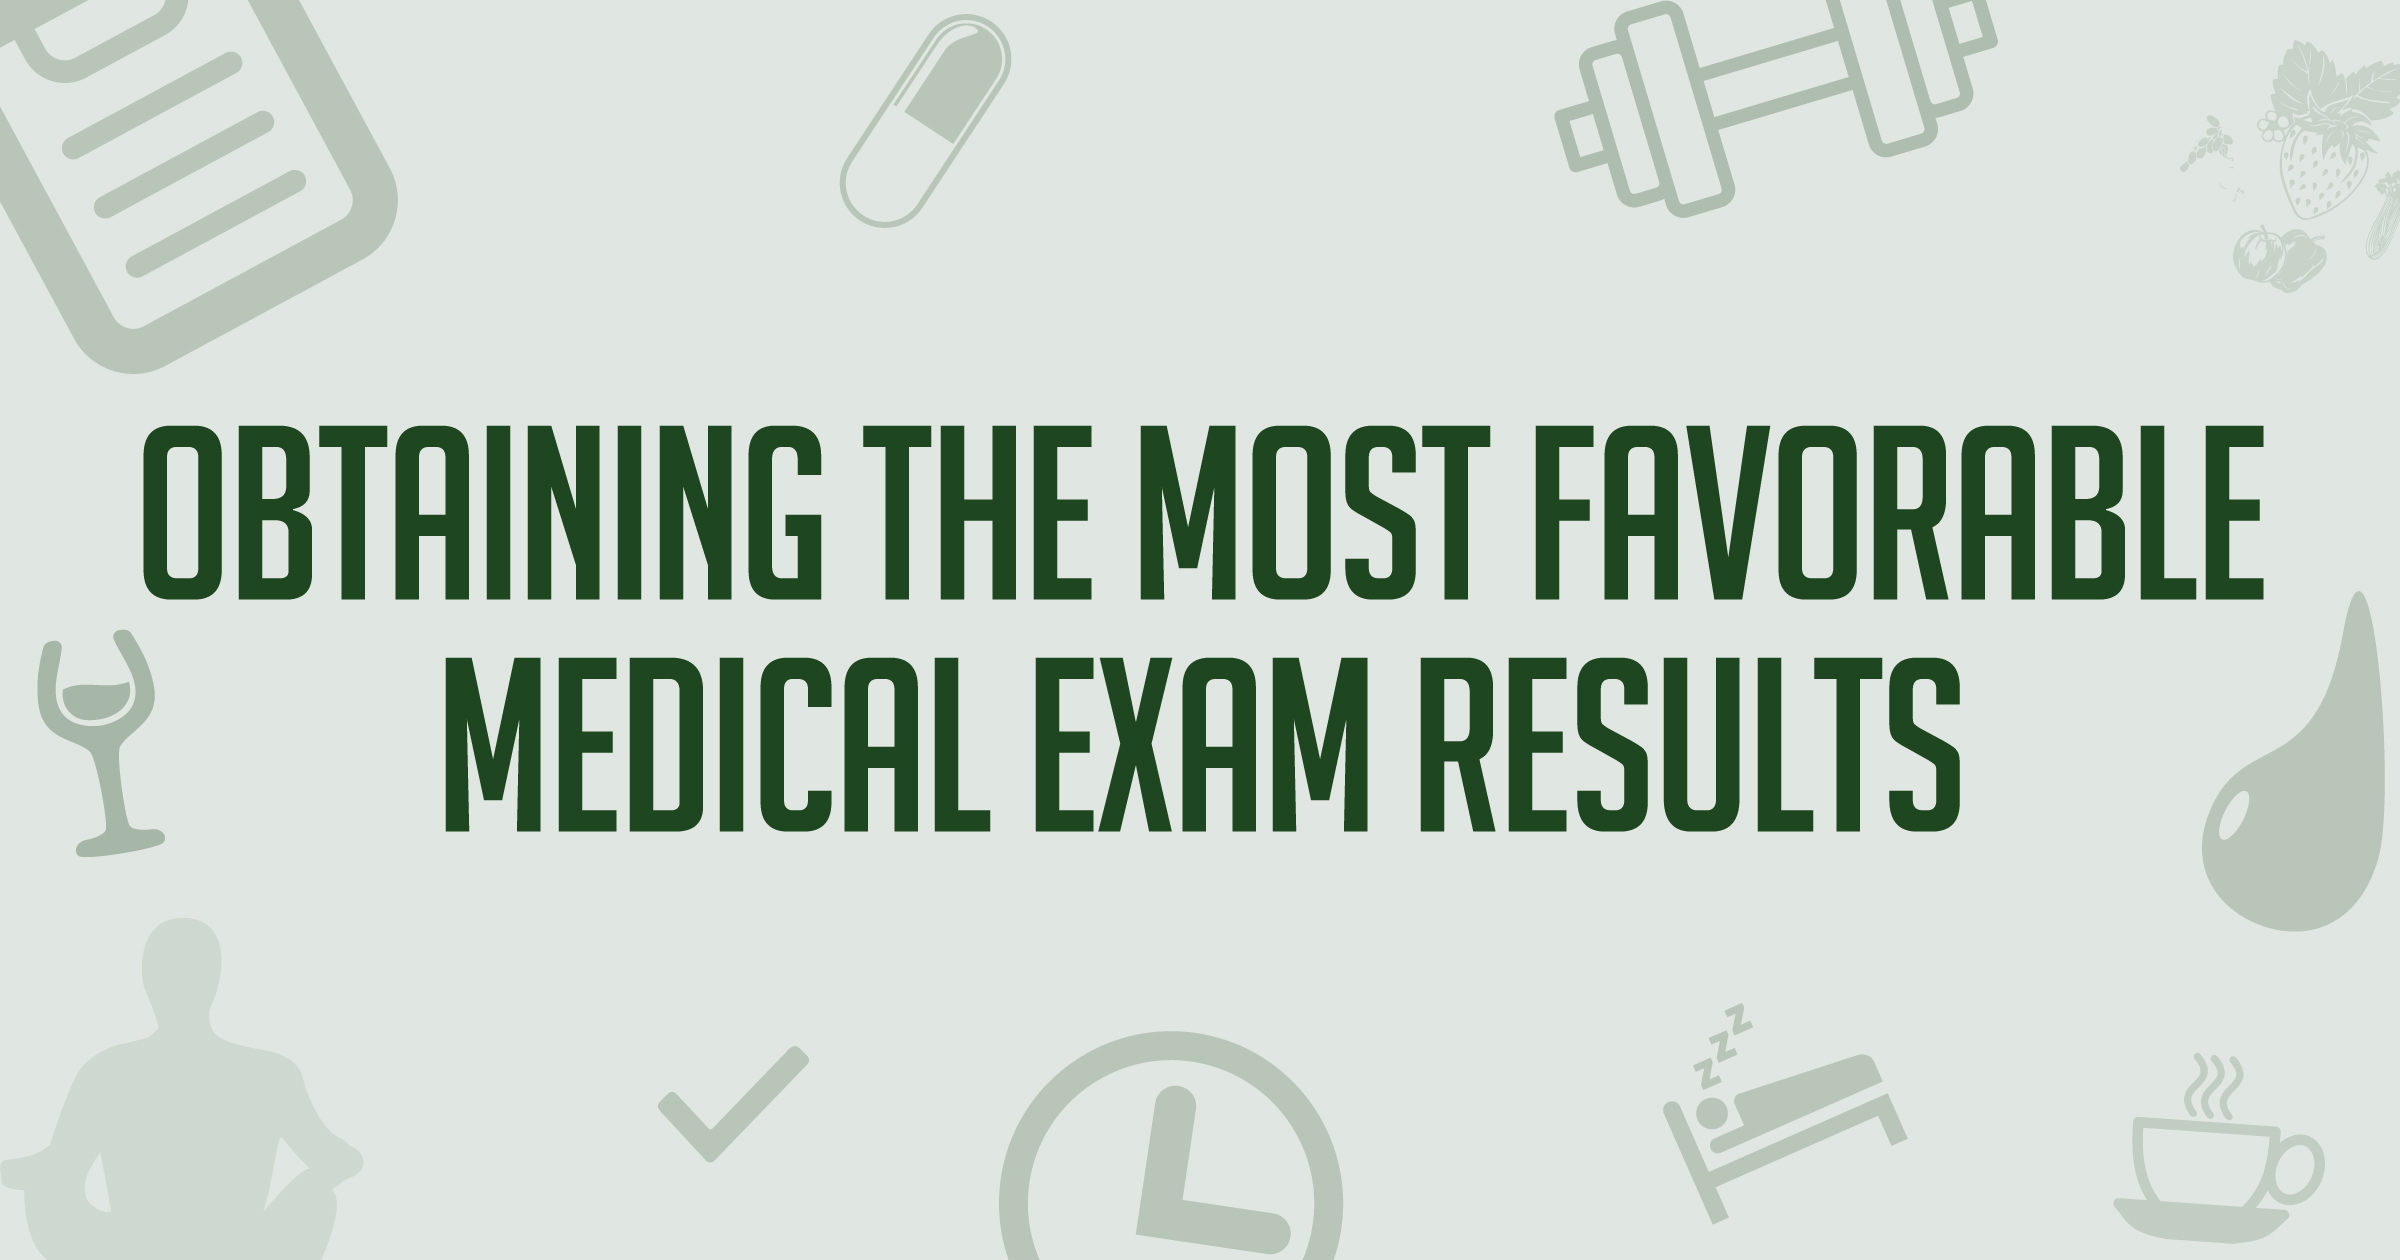 Obtaining The Most Favorable Medical Exam Results